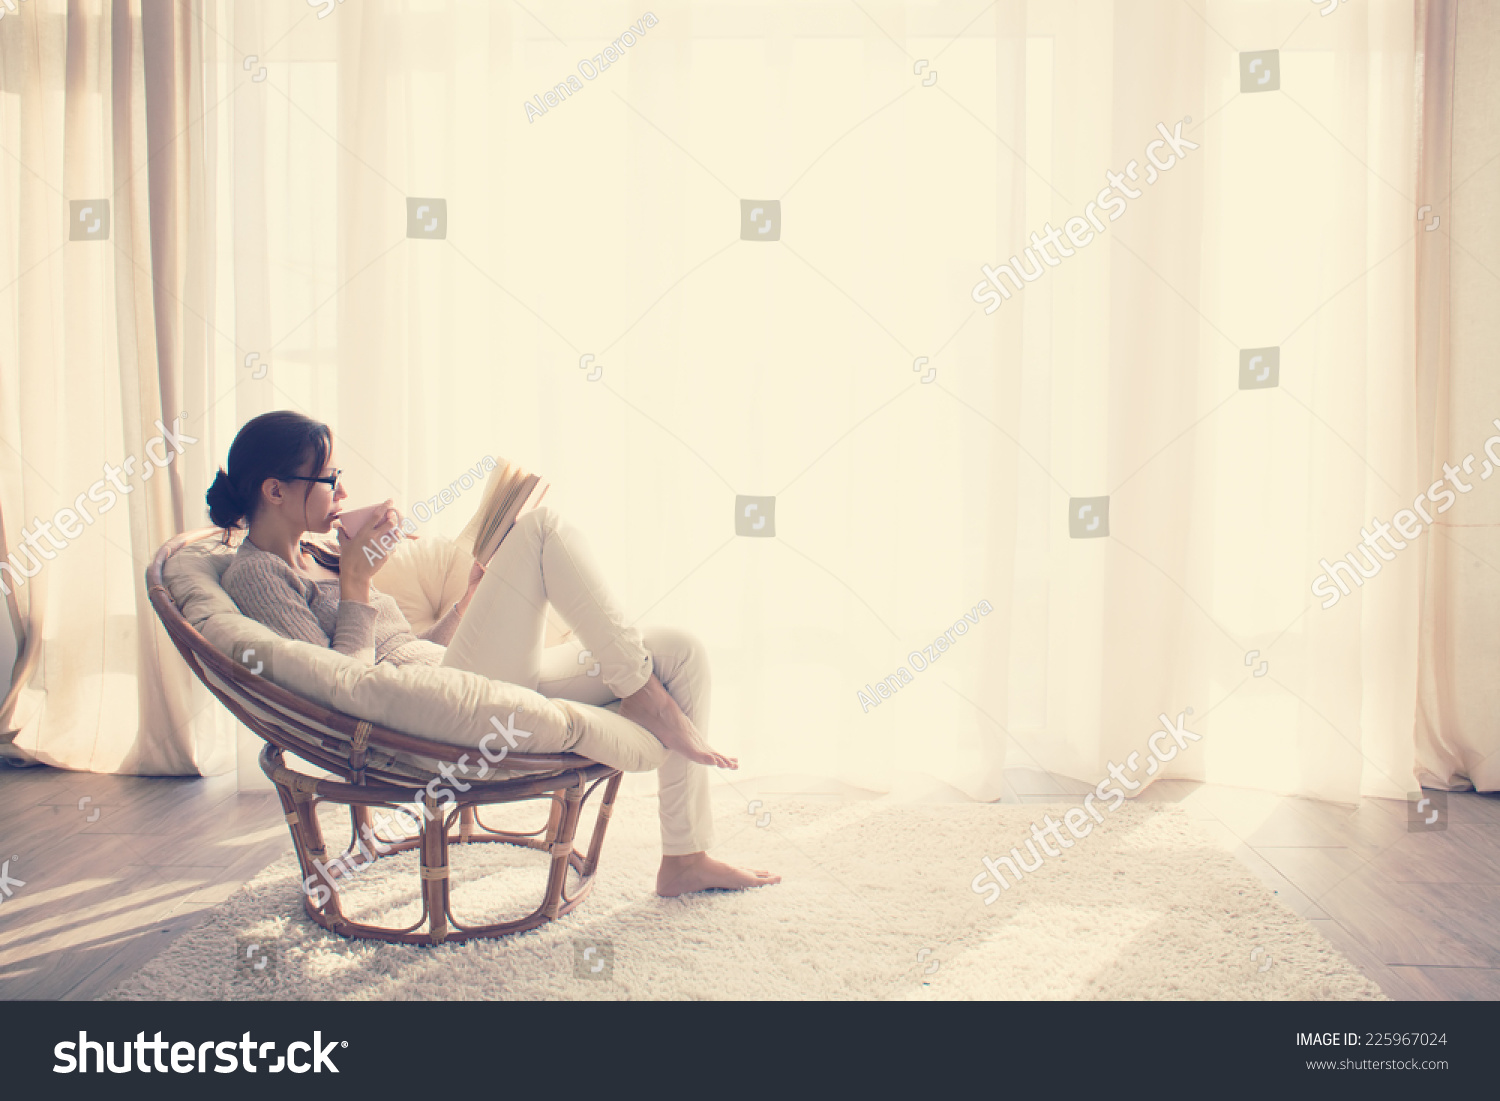 Living Room Sitting Chairs Young Woman Home Sitting On Modern Stock Photo 225967024